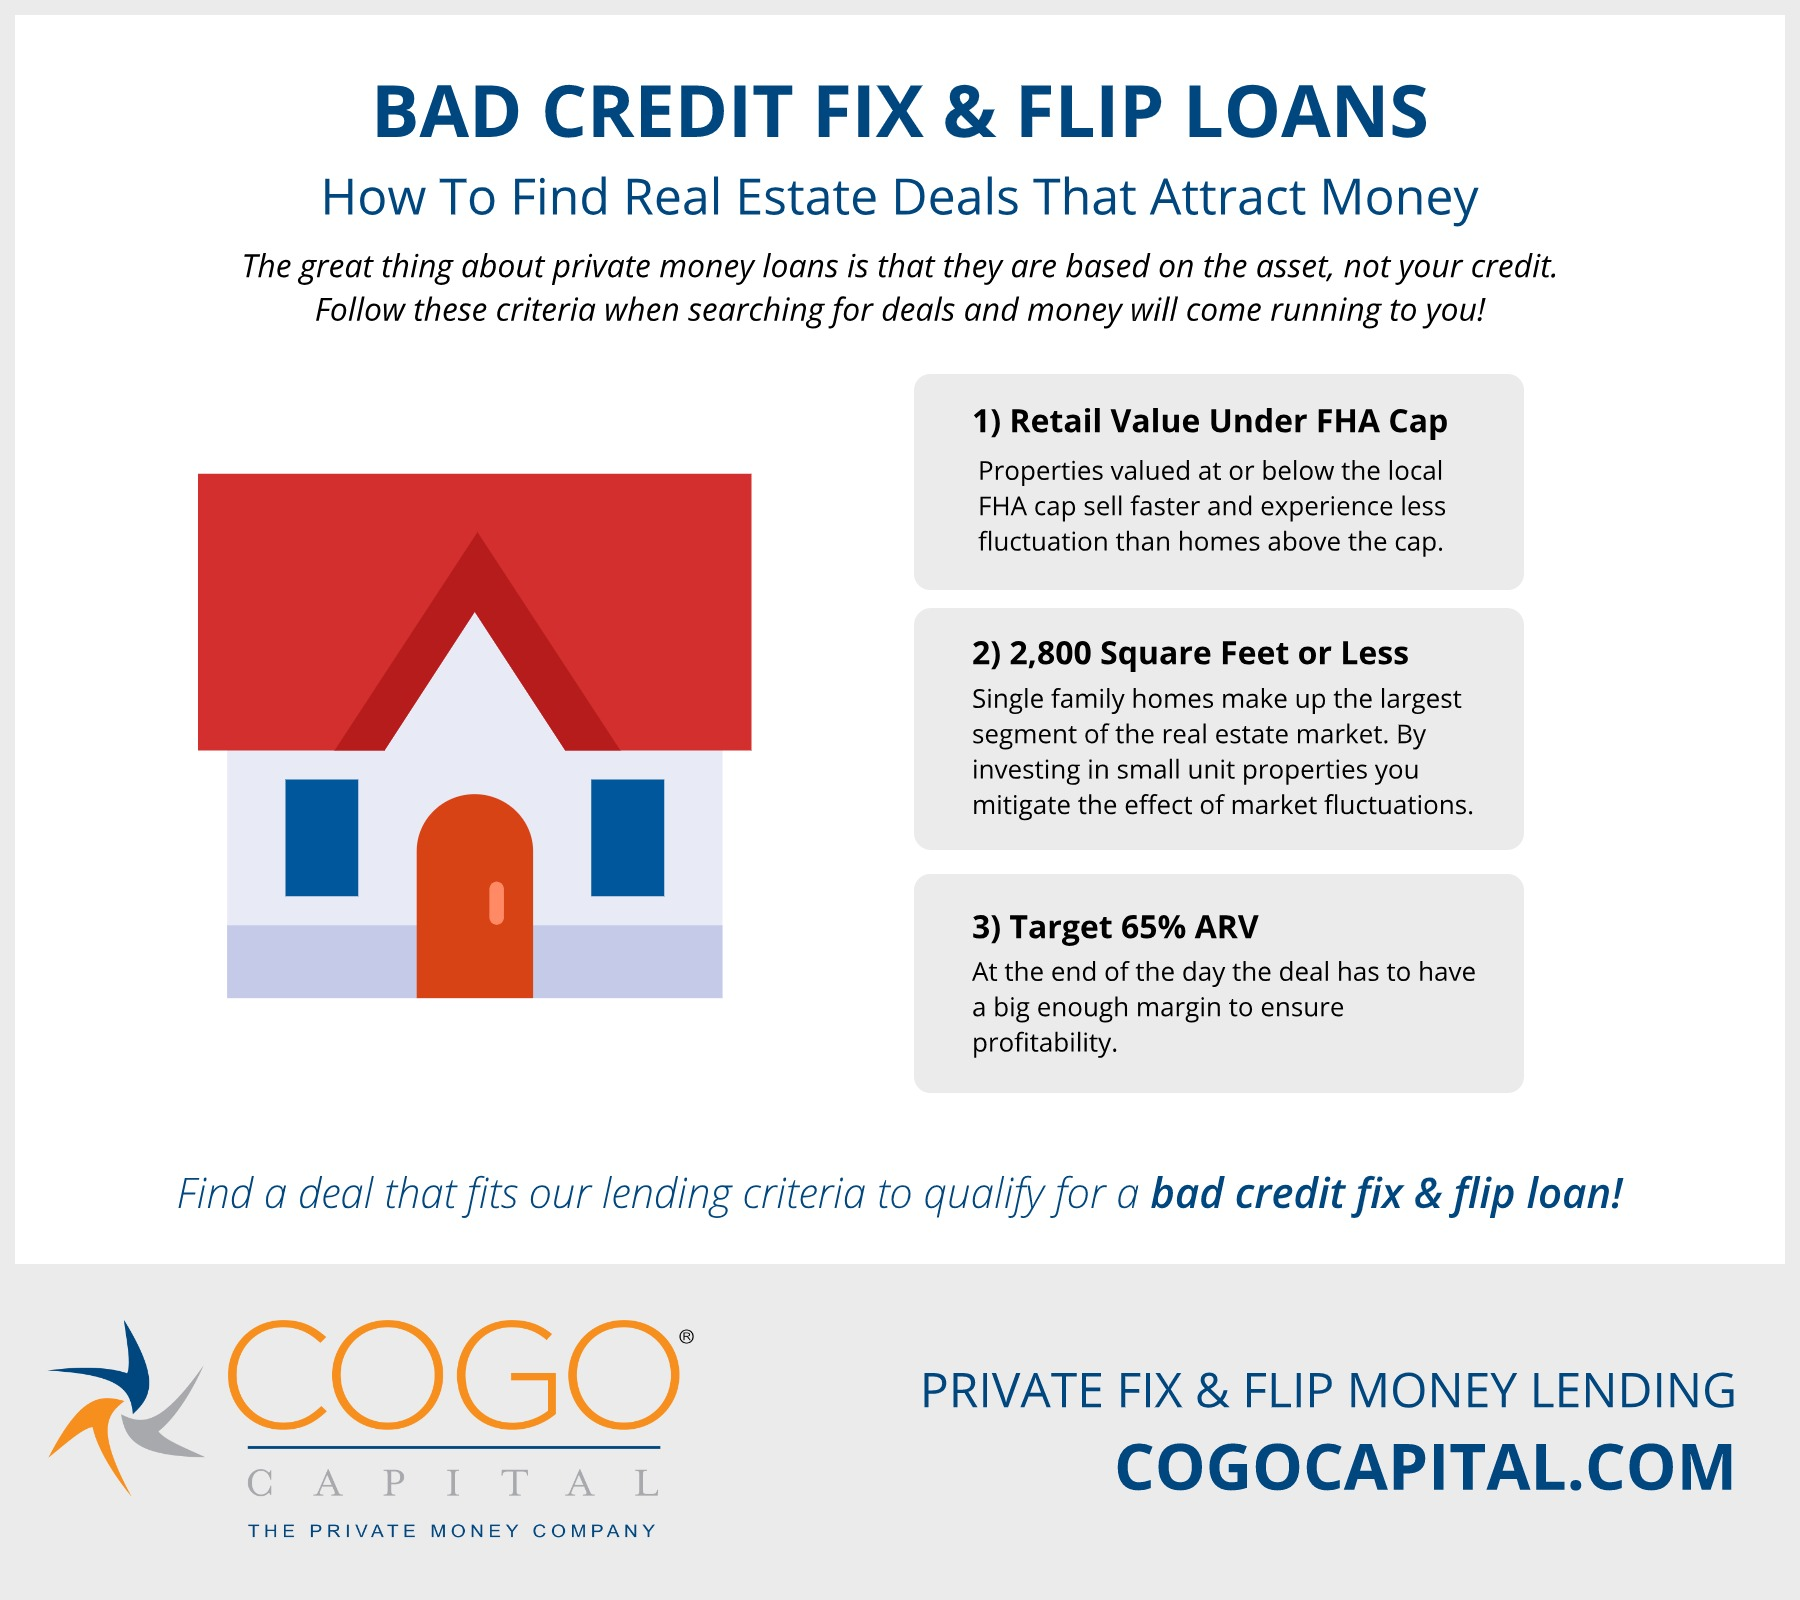 Bad Credit Fix and Flip Loans Infographic